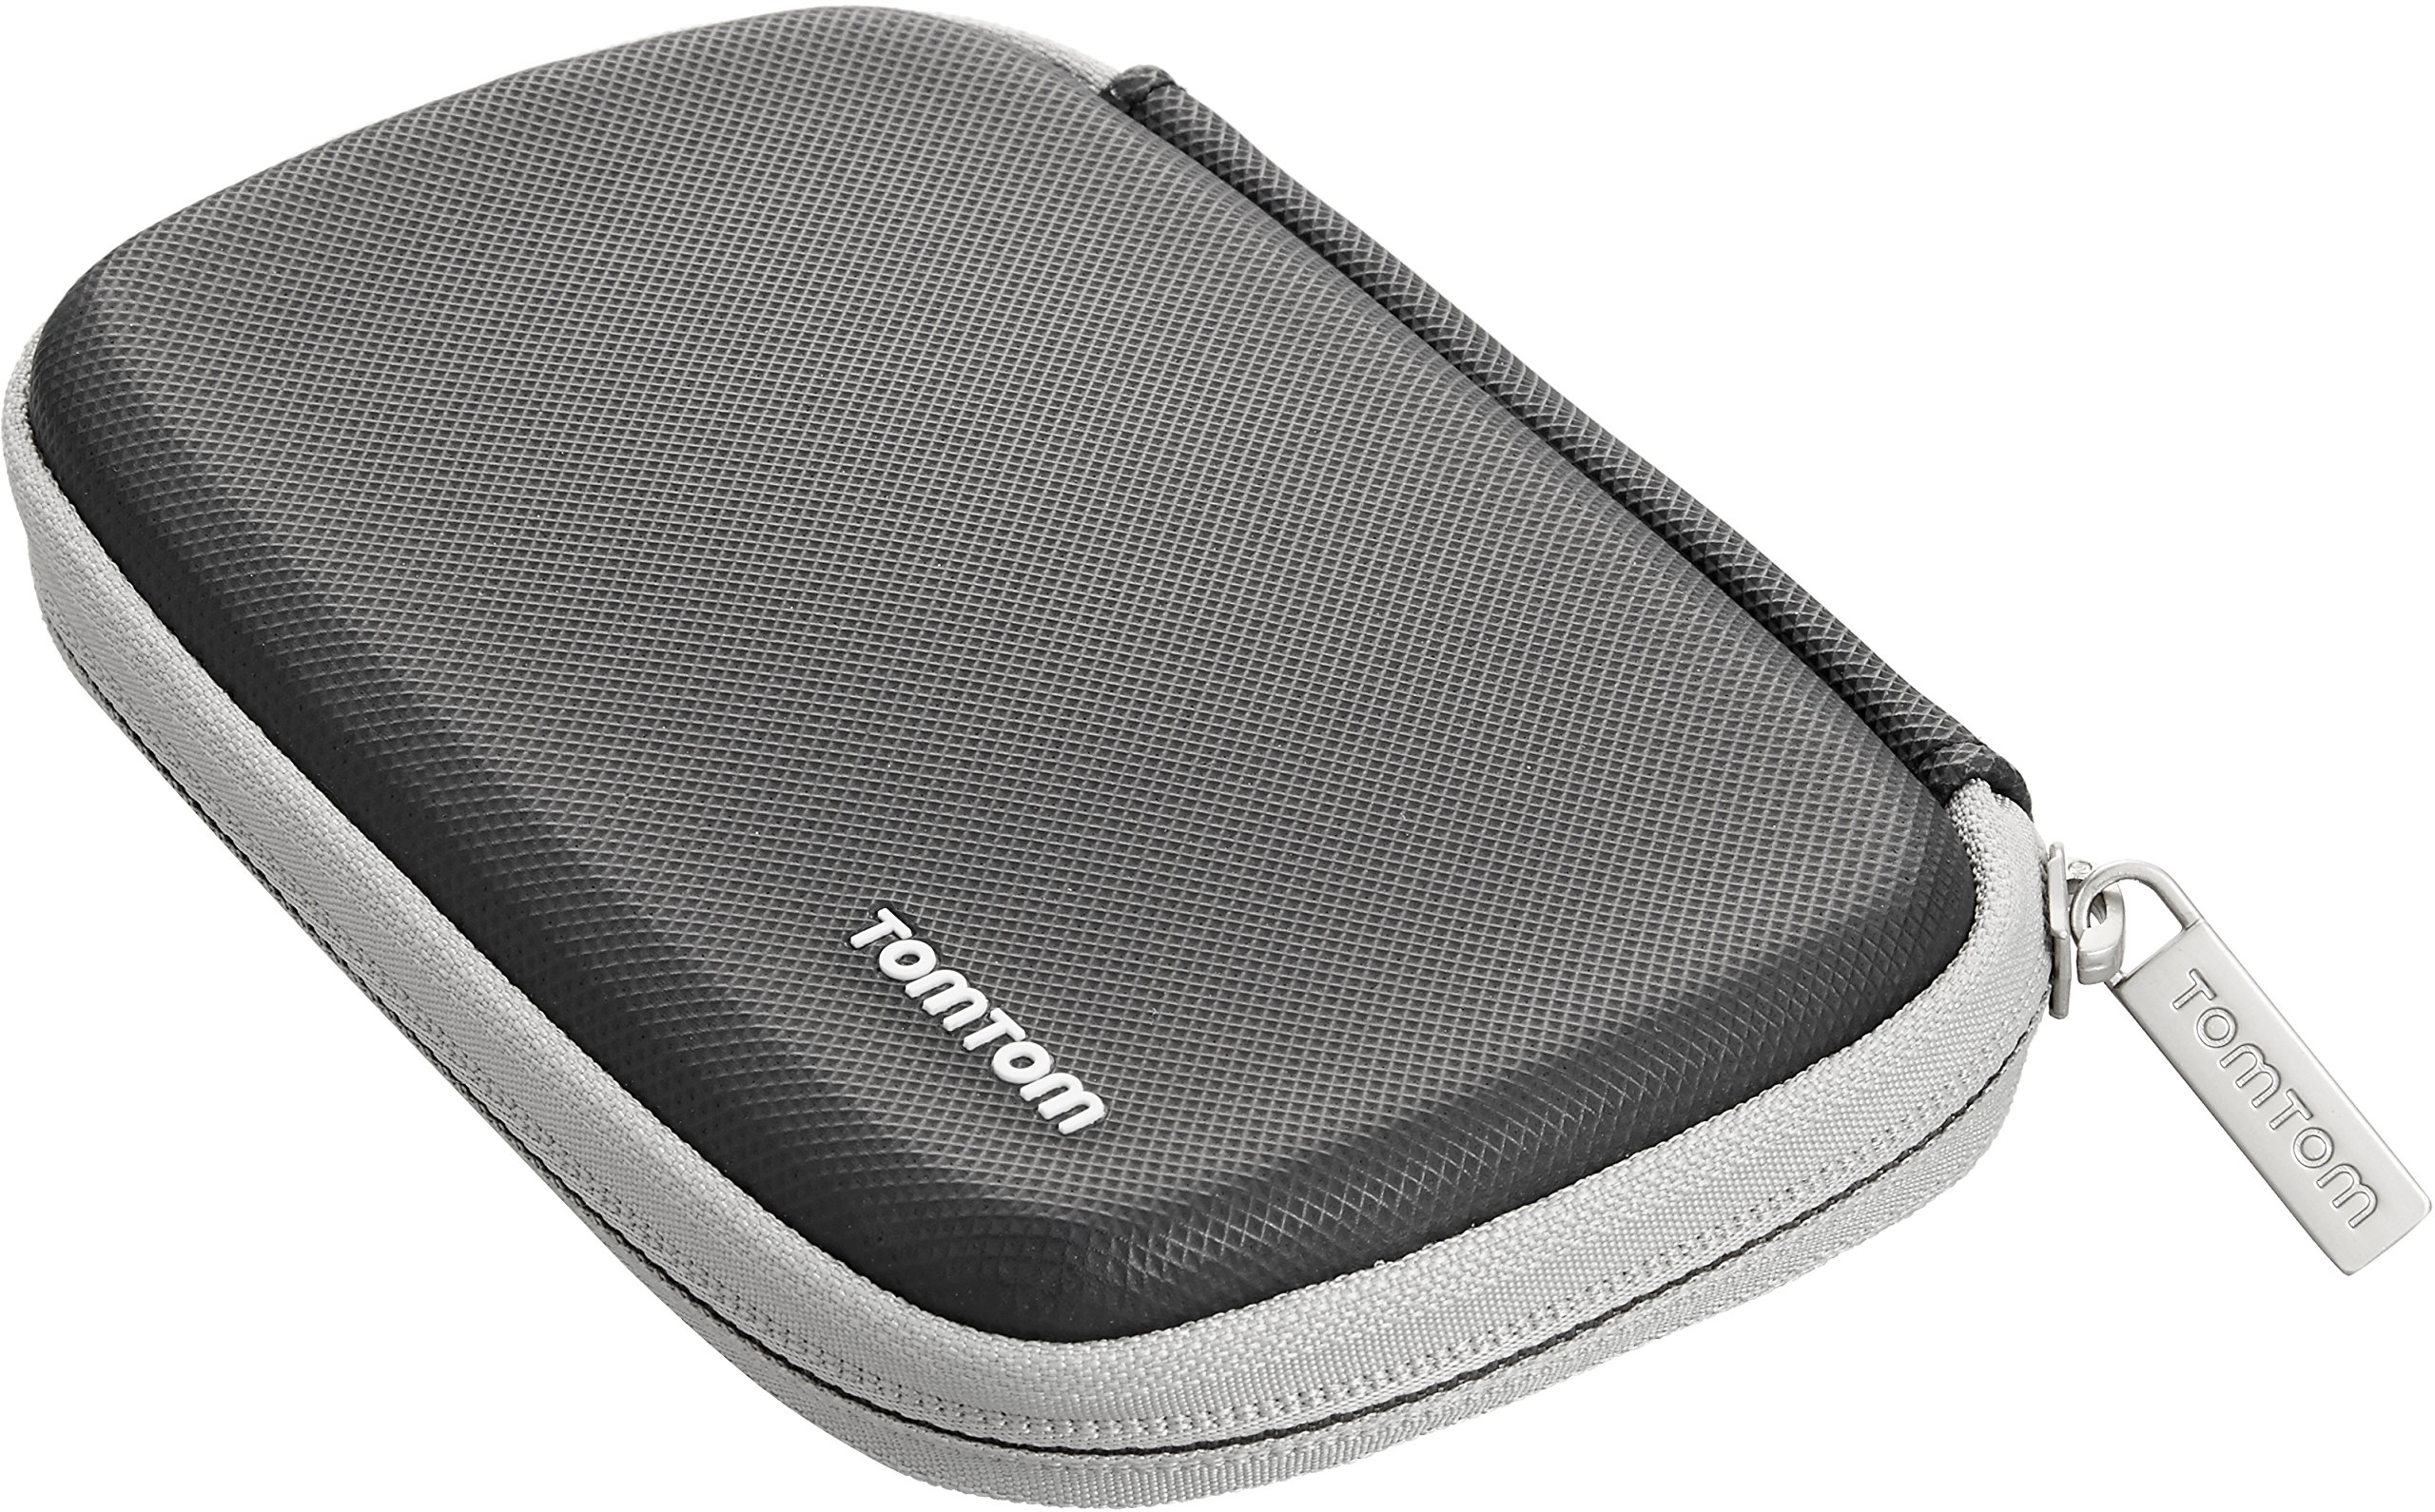 Tomtom 9UUA.001.63 Protective GPS Case for 4'' and 5'' Navigation Device - Black